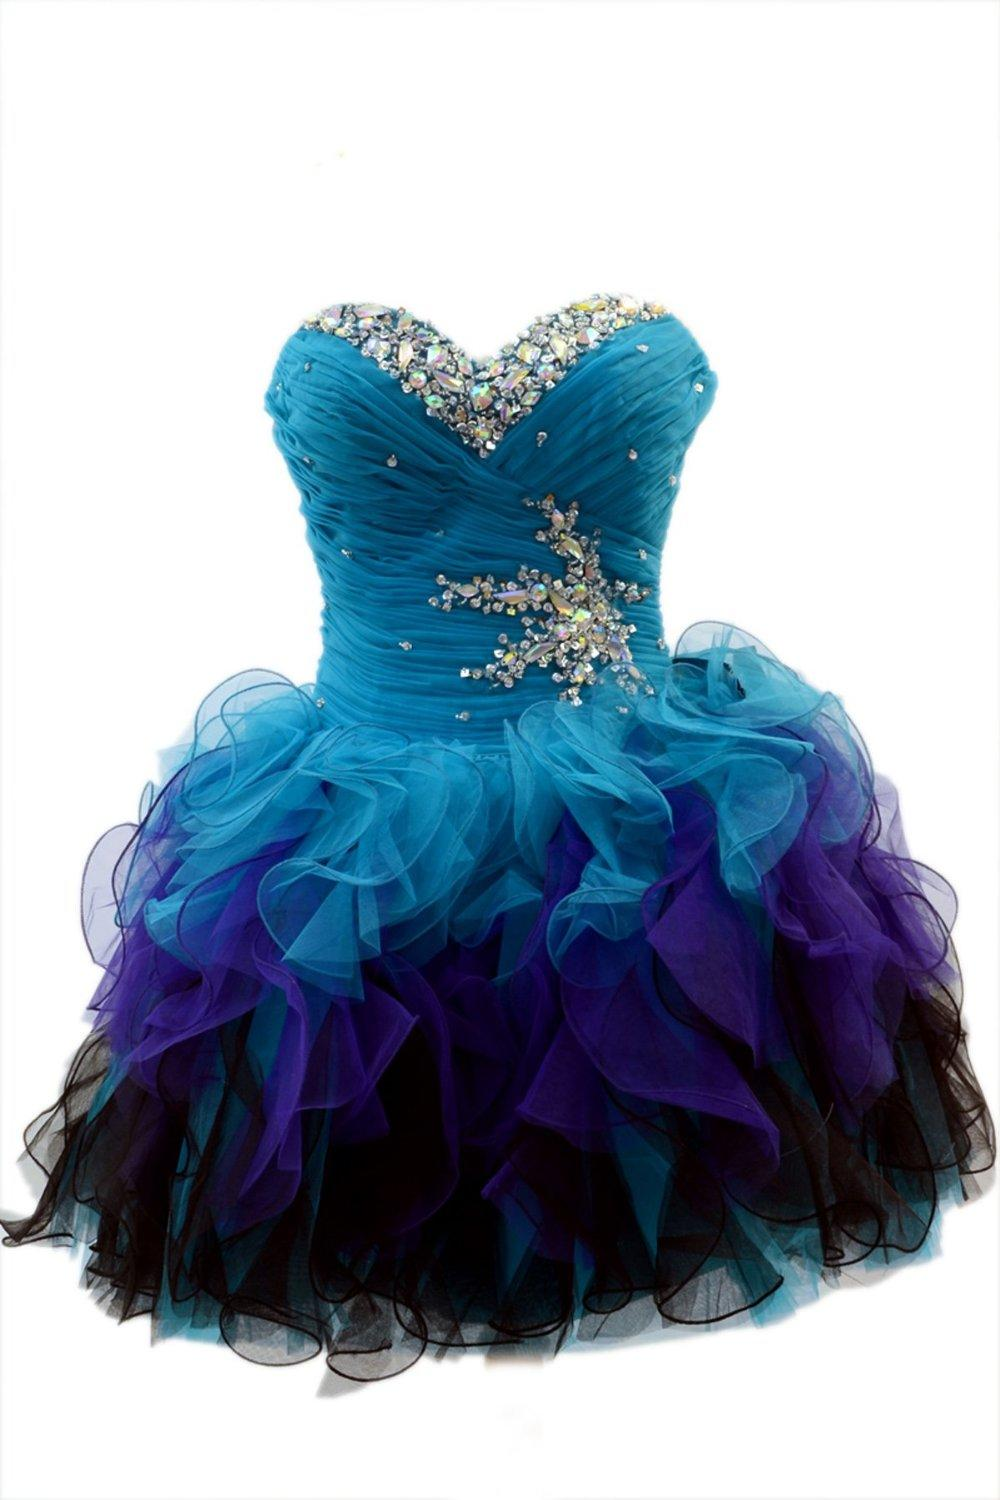 2018 PROM DRESS IDEAS - cover